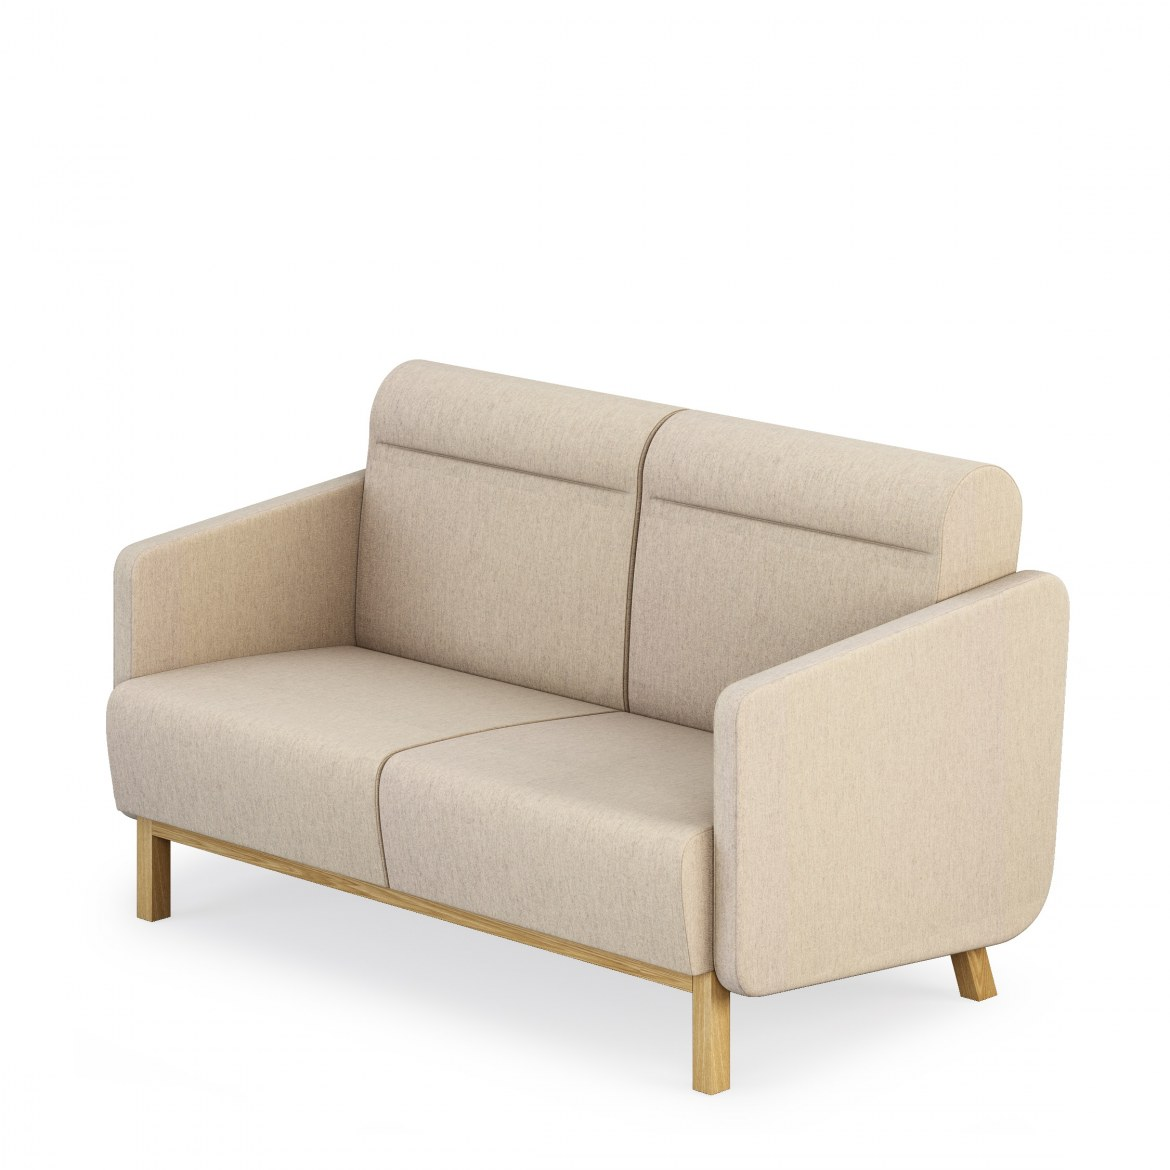 Mikomax Packman Sofa   PAC-MT-003 2